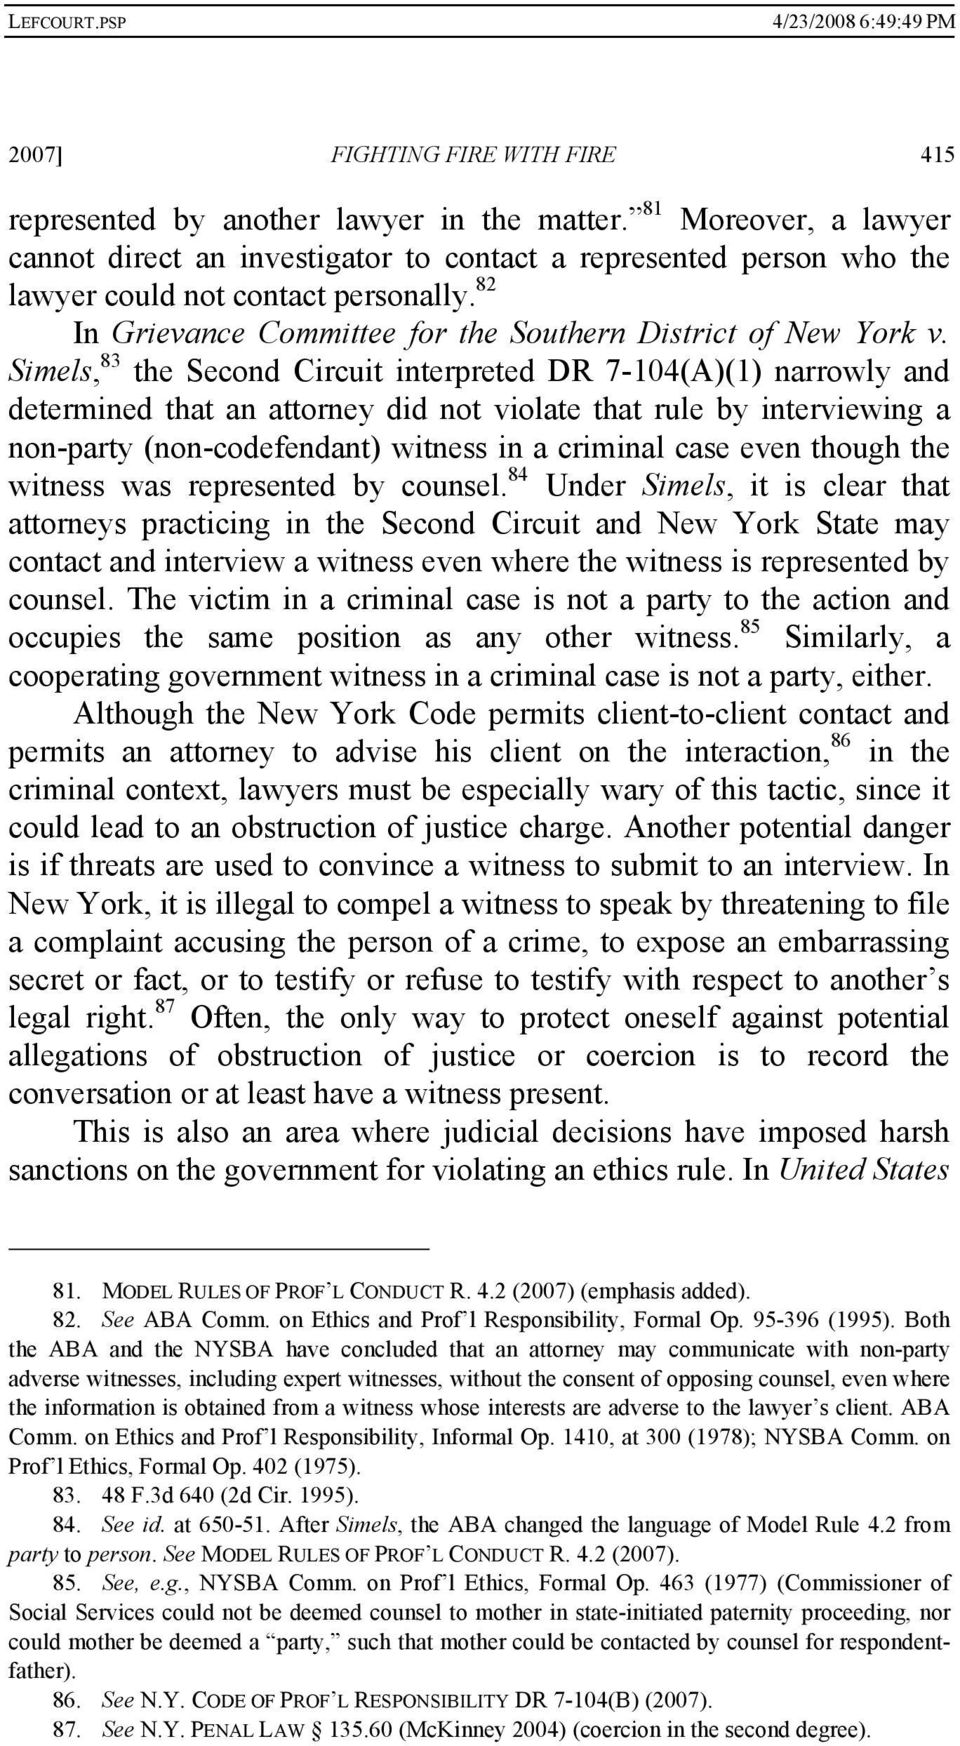 Simels, 83 the Second Circuit interpreted DR 7-104(A)(1) narrowly and determined that an attorney did not violate that rule by interviewing a non-party (non-codefendant) witness in a criminal case